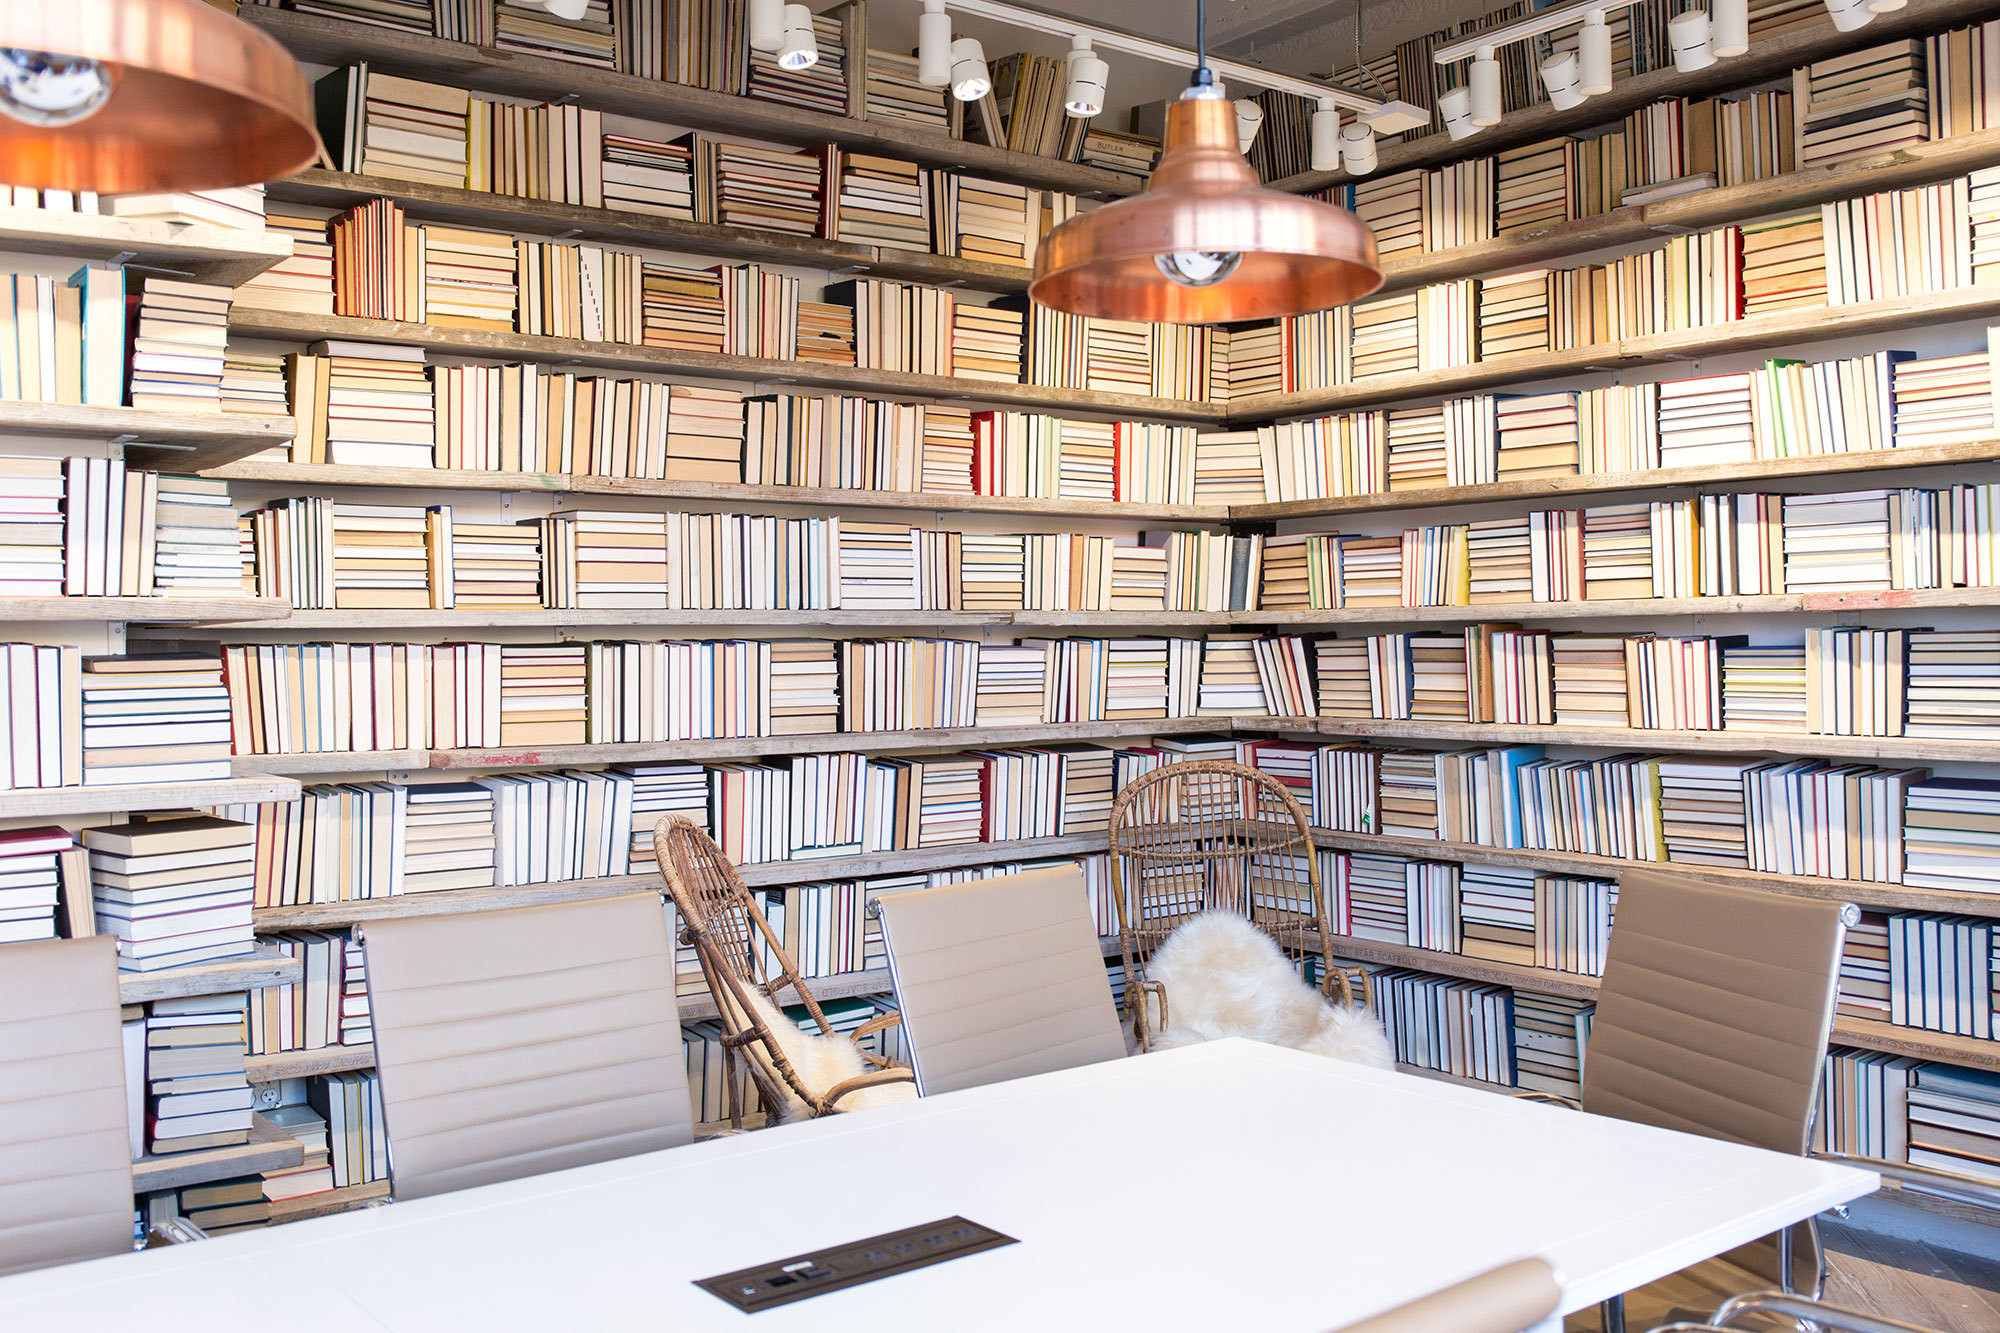 Three out of the four walls of Naficy's personal conference room is covered in old books from a public library, a design choice she credits Ermshar for imagining.